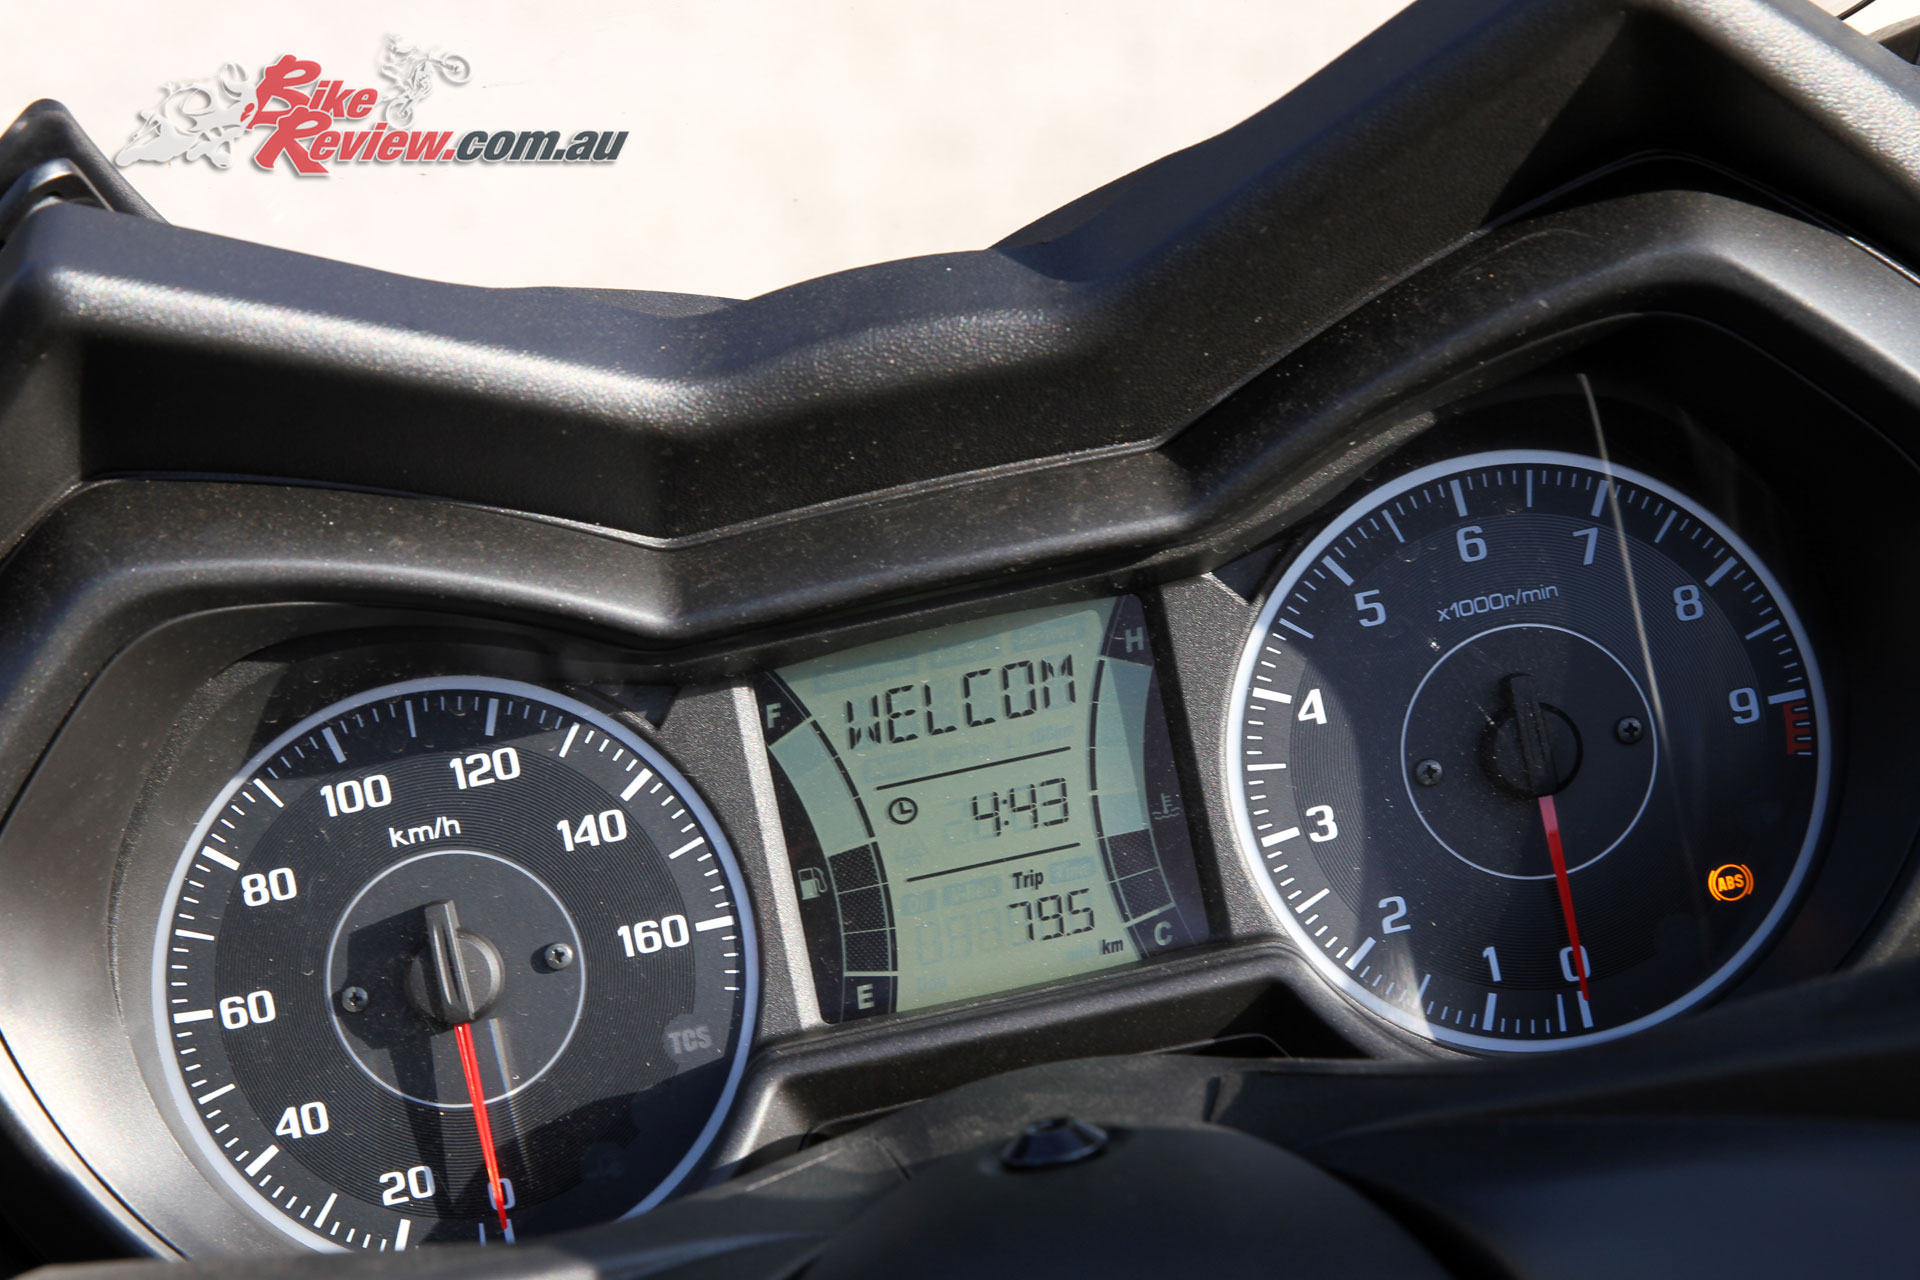 Analogue speedo and tacho frame the digital multi-function display